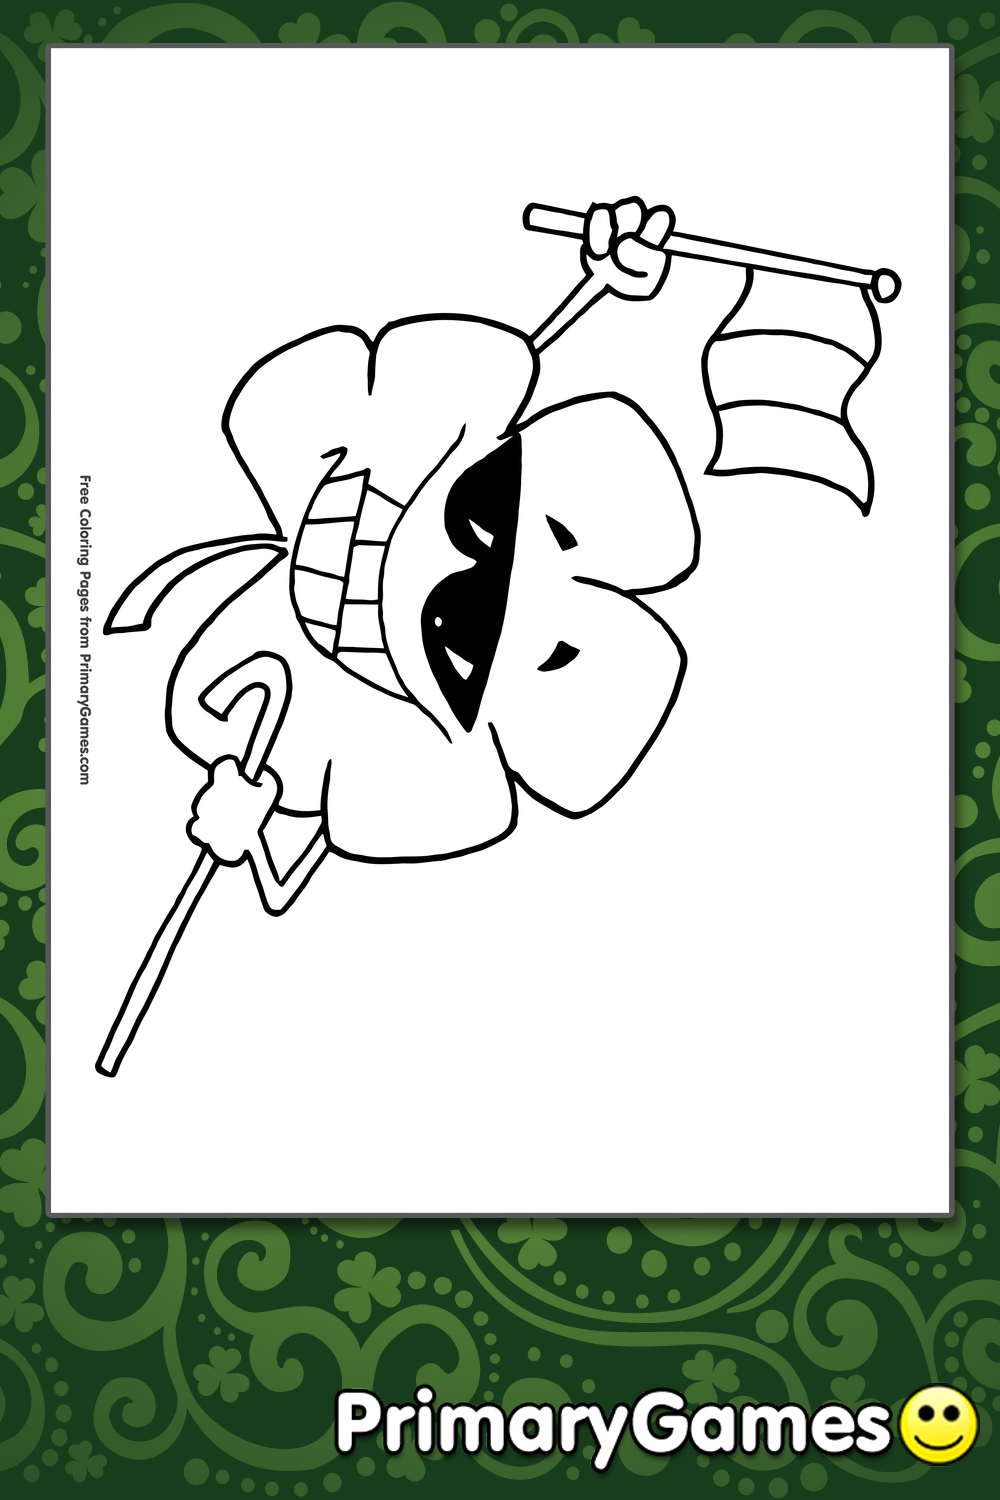 st patrick s day coloring pages pdf - shamrock holding an irish flag coloring page printable